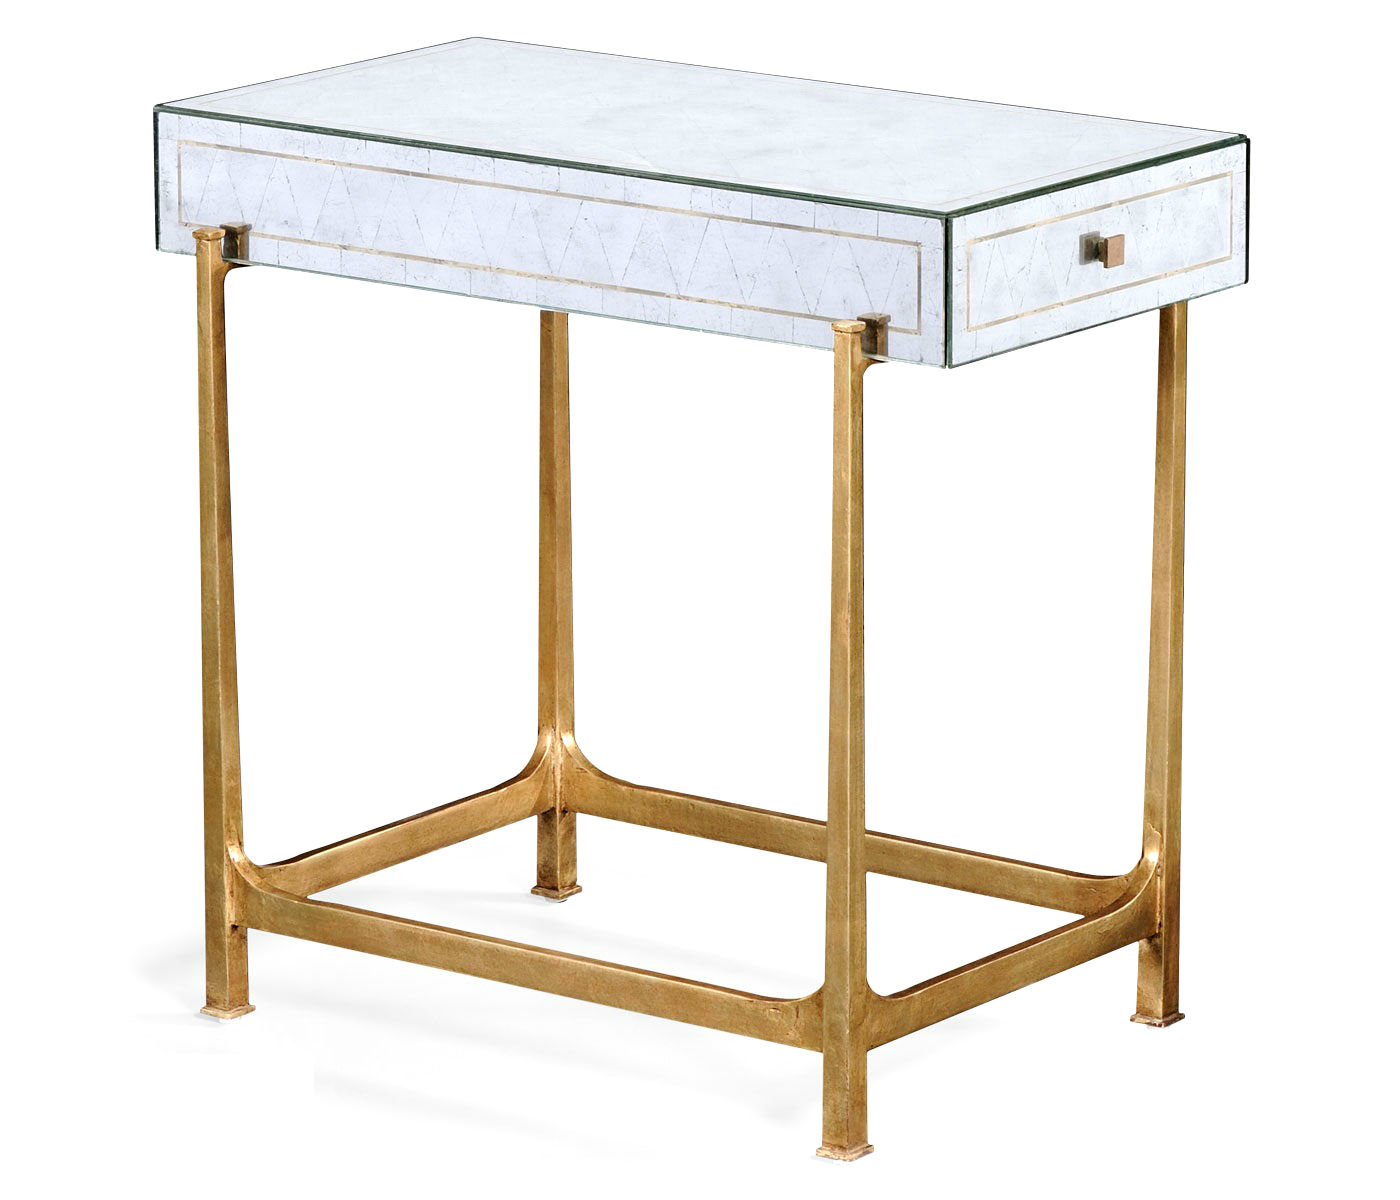 eglomise side table end accent tables distressed wood coffee and tall elegant mirrored gold gilded partner console available hospitality residential modern bedside lamps mirror